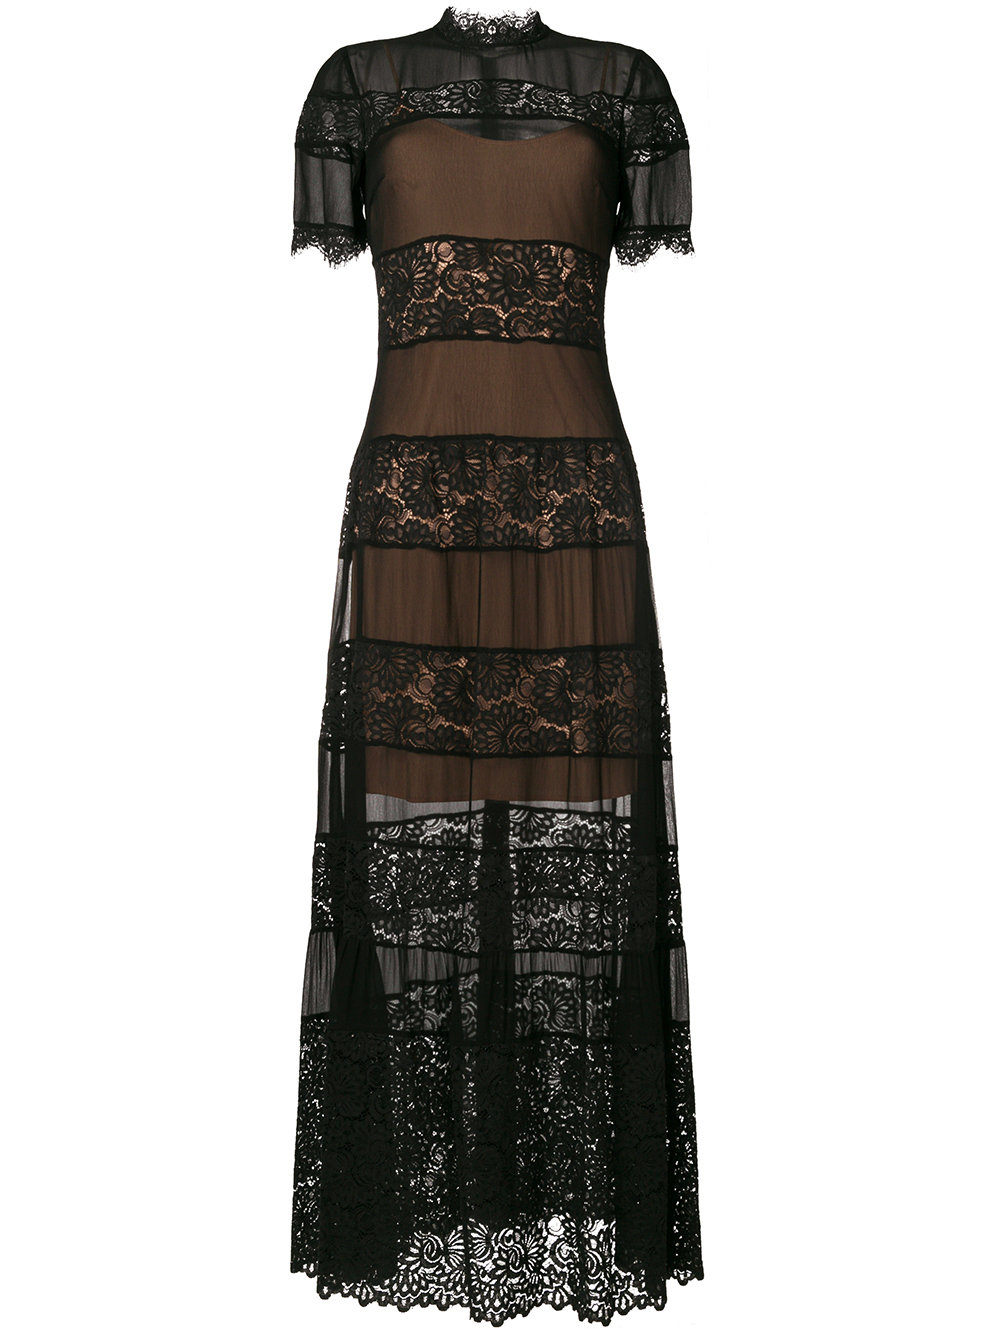 TWIN SET DRESSES twin-set lace detail dress black 00006 women designer fashion,twin set  dresses online,new york IFFRQYD